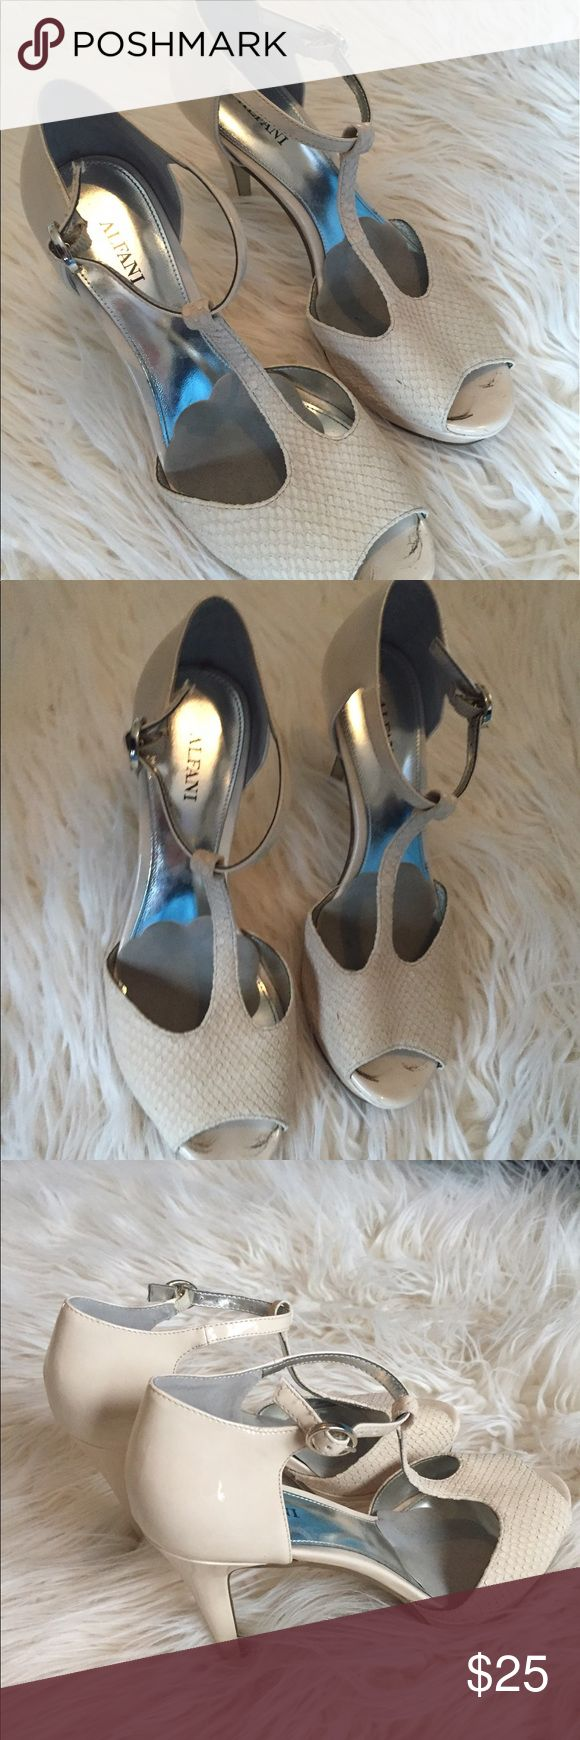 Beige heels Beige t strap 3 inch heels! Has some dirt wear toes are and on bottom. Has foot pads on inside. Size 7, fits true Macy's Shoes Heels